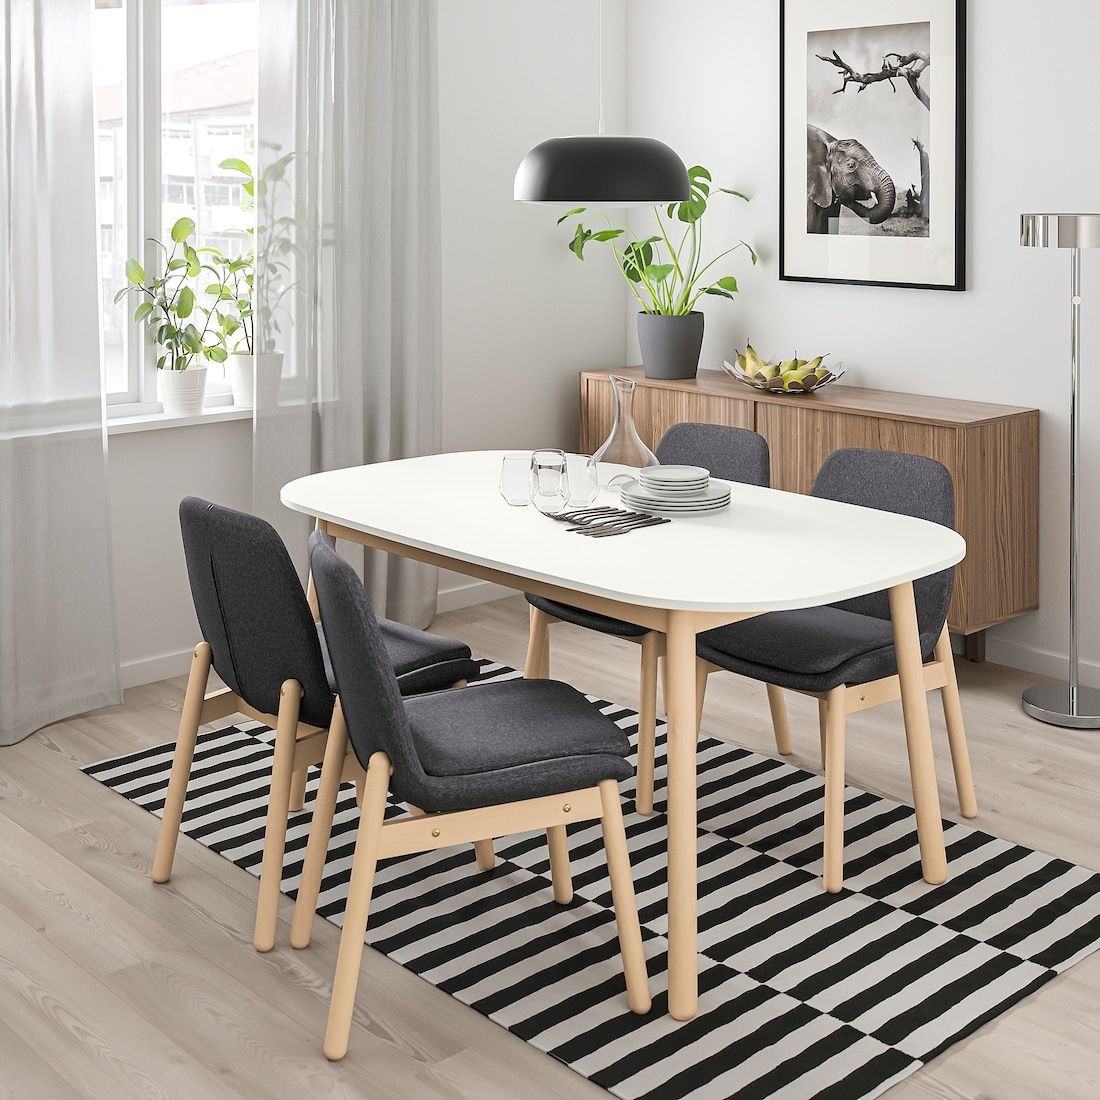 VEDBO Dining table - white - IKEA  Dining table design, Four